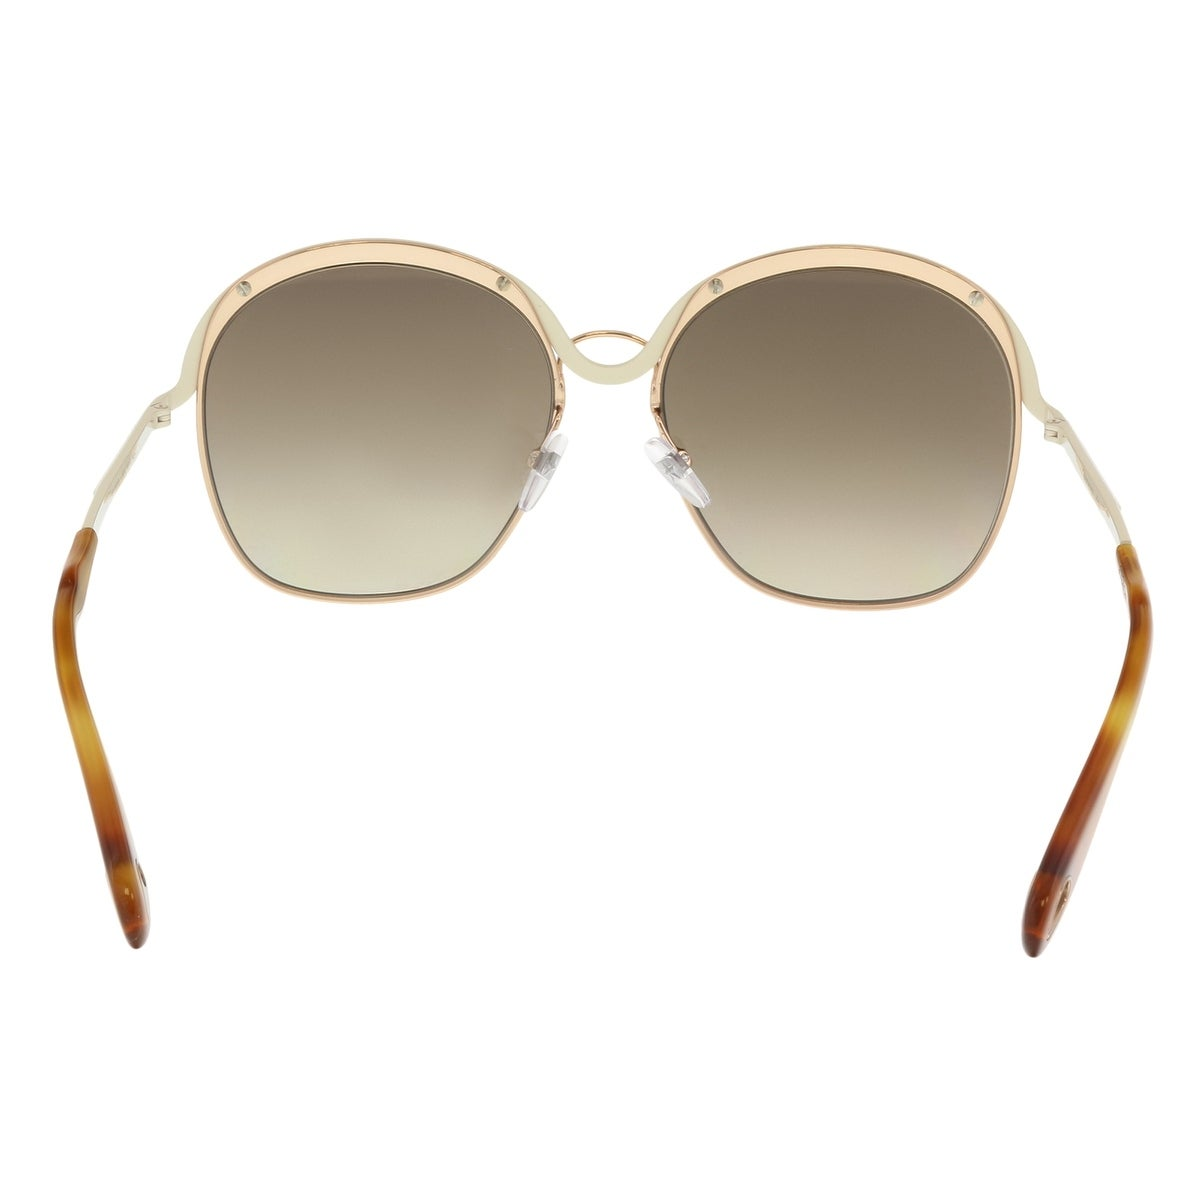 24f15c99415 Shop Givenchy GV7030S 0J1O Gold Beige Oval Sunglasses - 58-17-140 - Free  Shipping Today - Overstock - 21158338